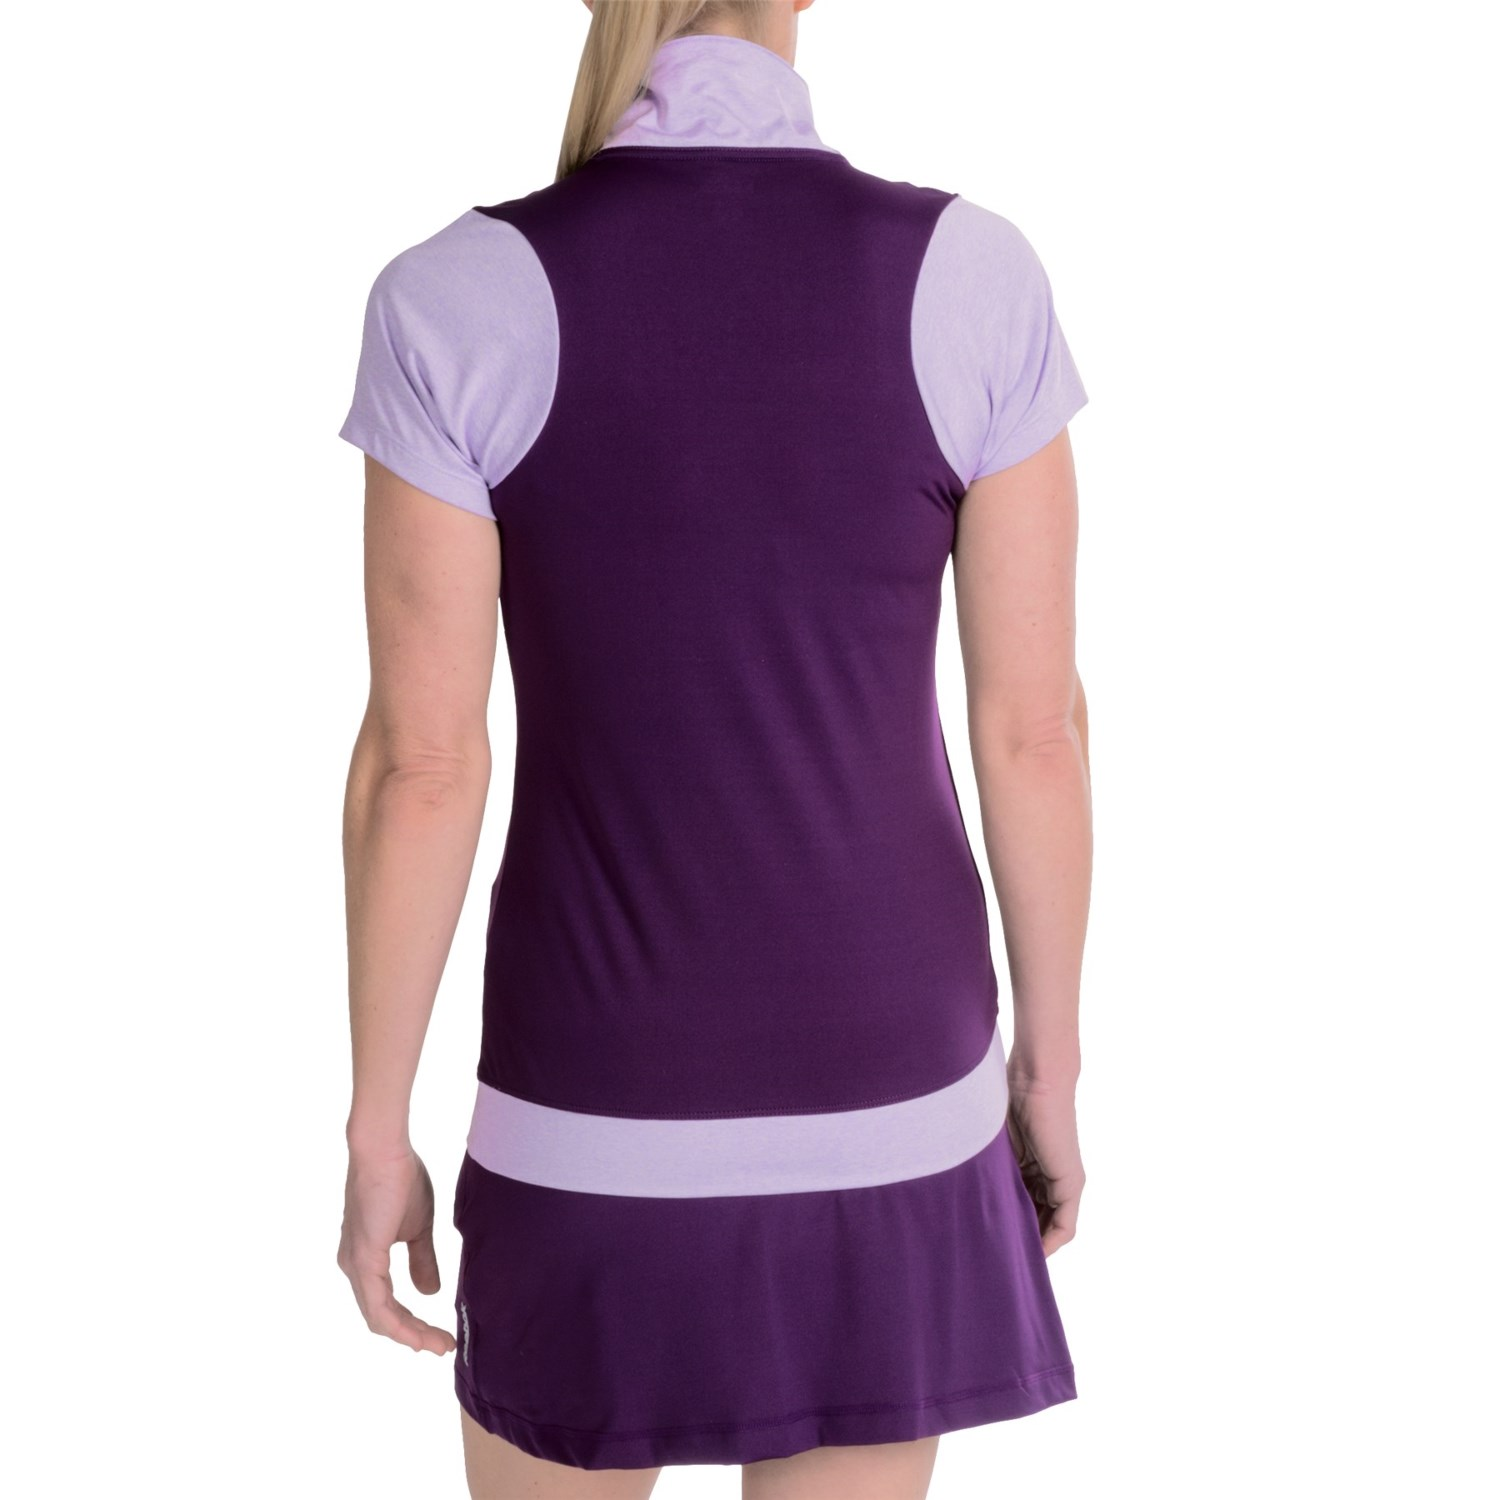 Reebok Golf Polo Shirt For Women Save 82